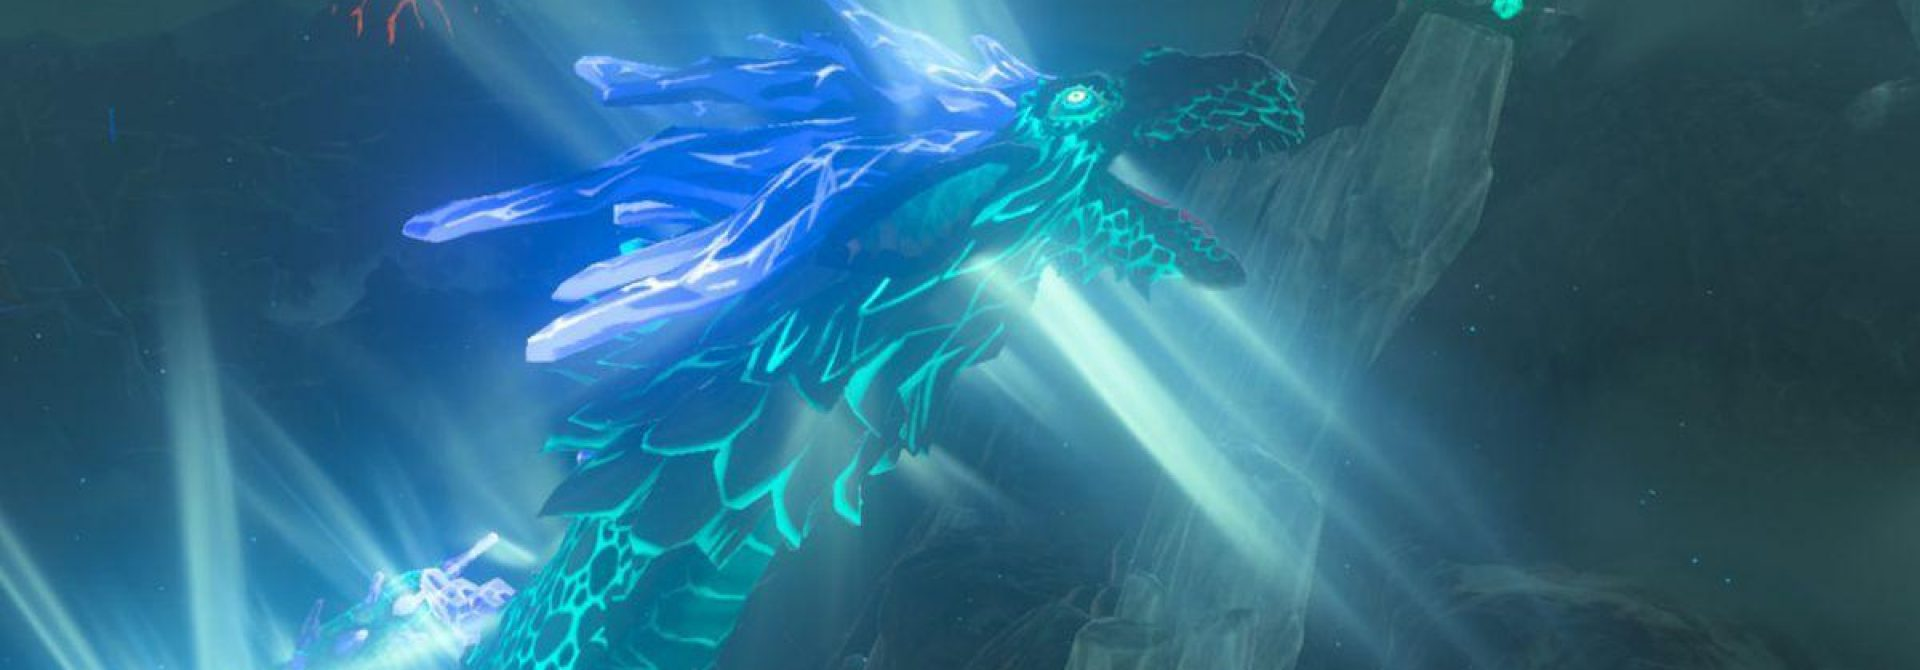 BOTW Naydra Dragon Farming – Finding, Fighting, and Collecting From Naydra In Breath Of The Wild